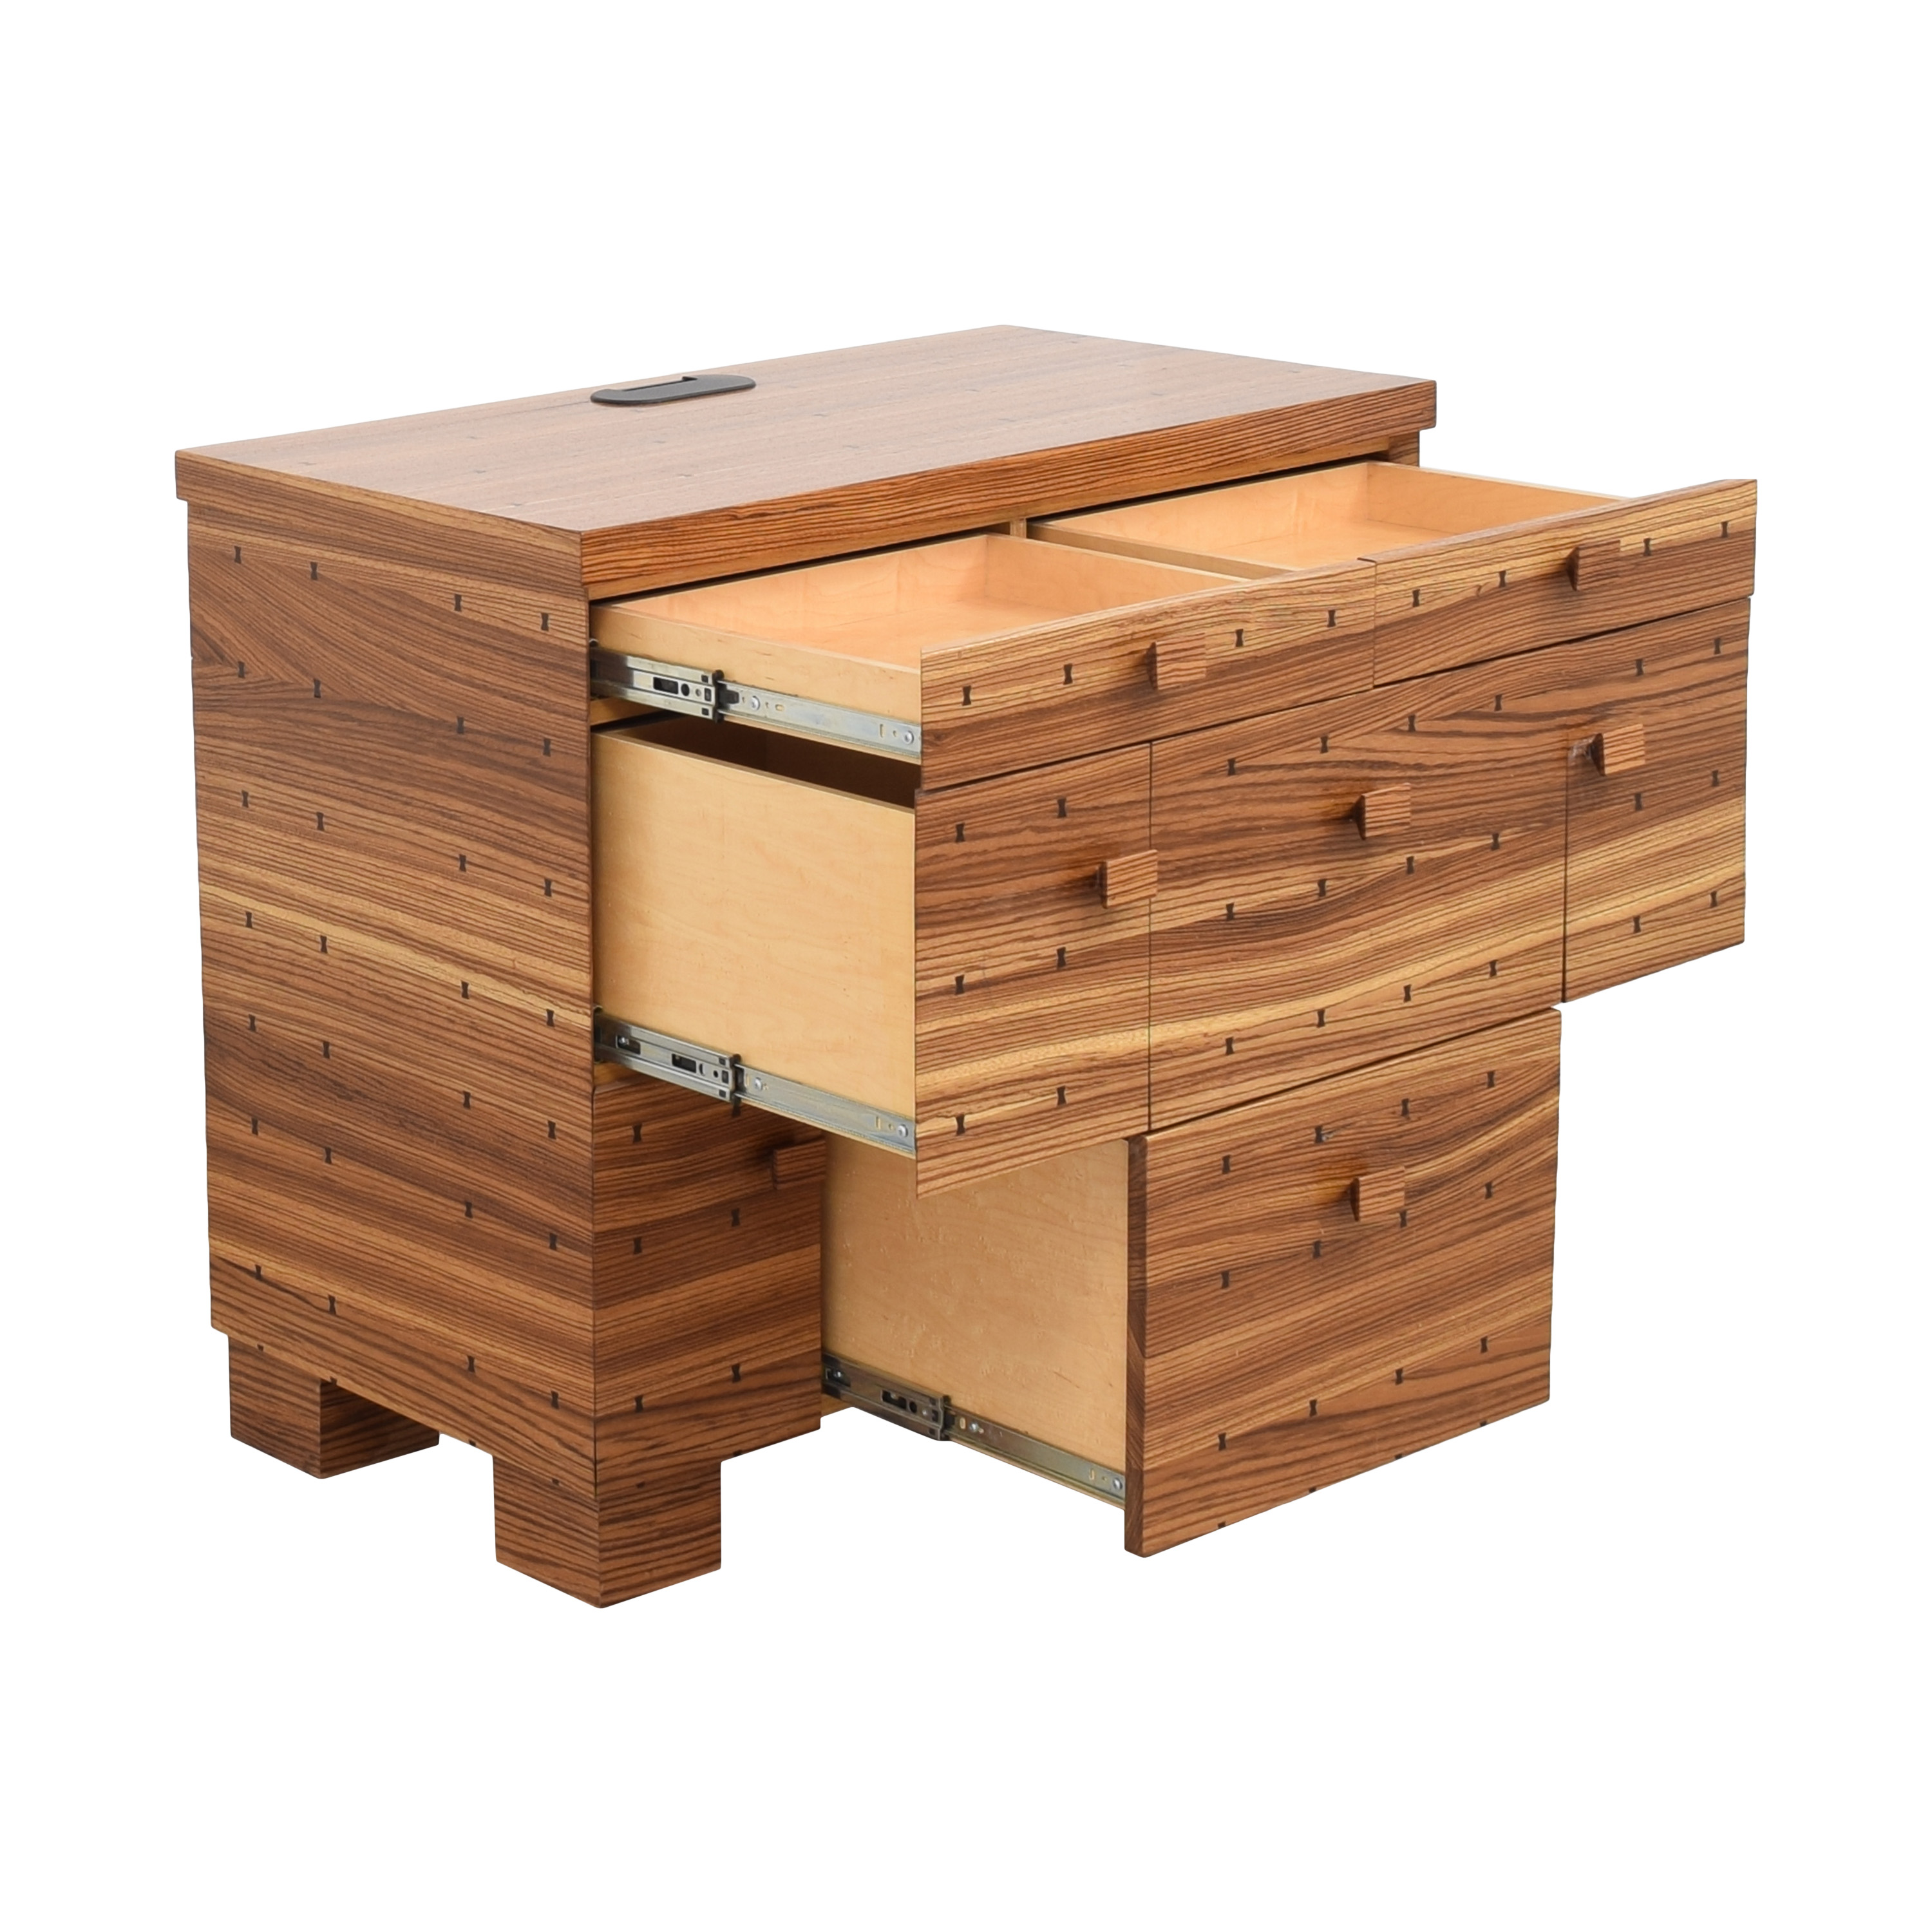 Storage Nightstand with Bowtie Inlay Design Tables